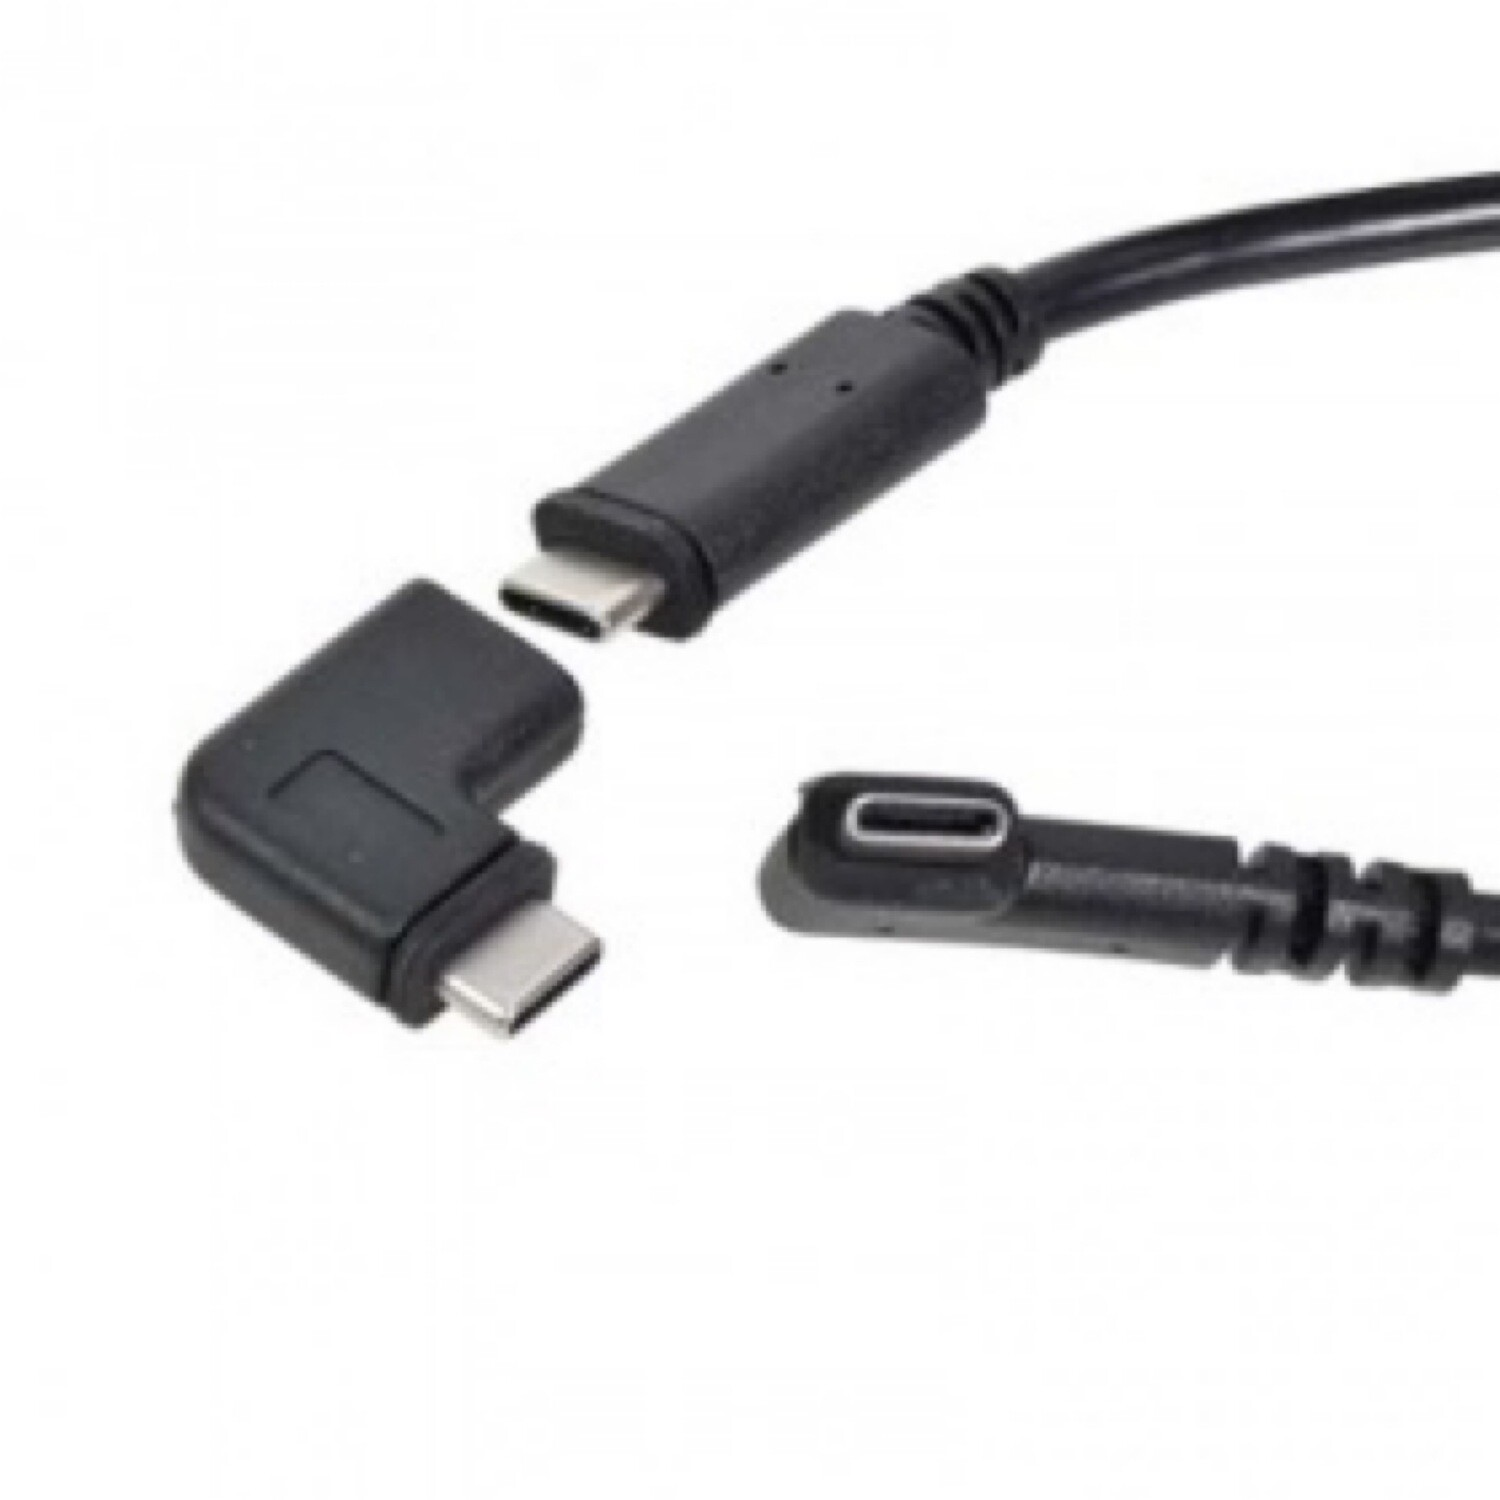 Kessil X Series 90 Degree K Link Cable - 10'